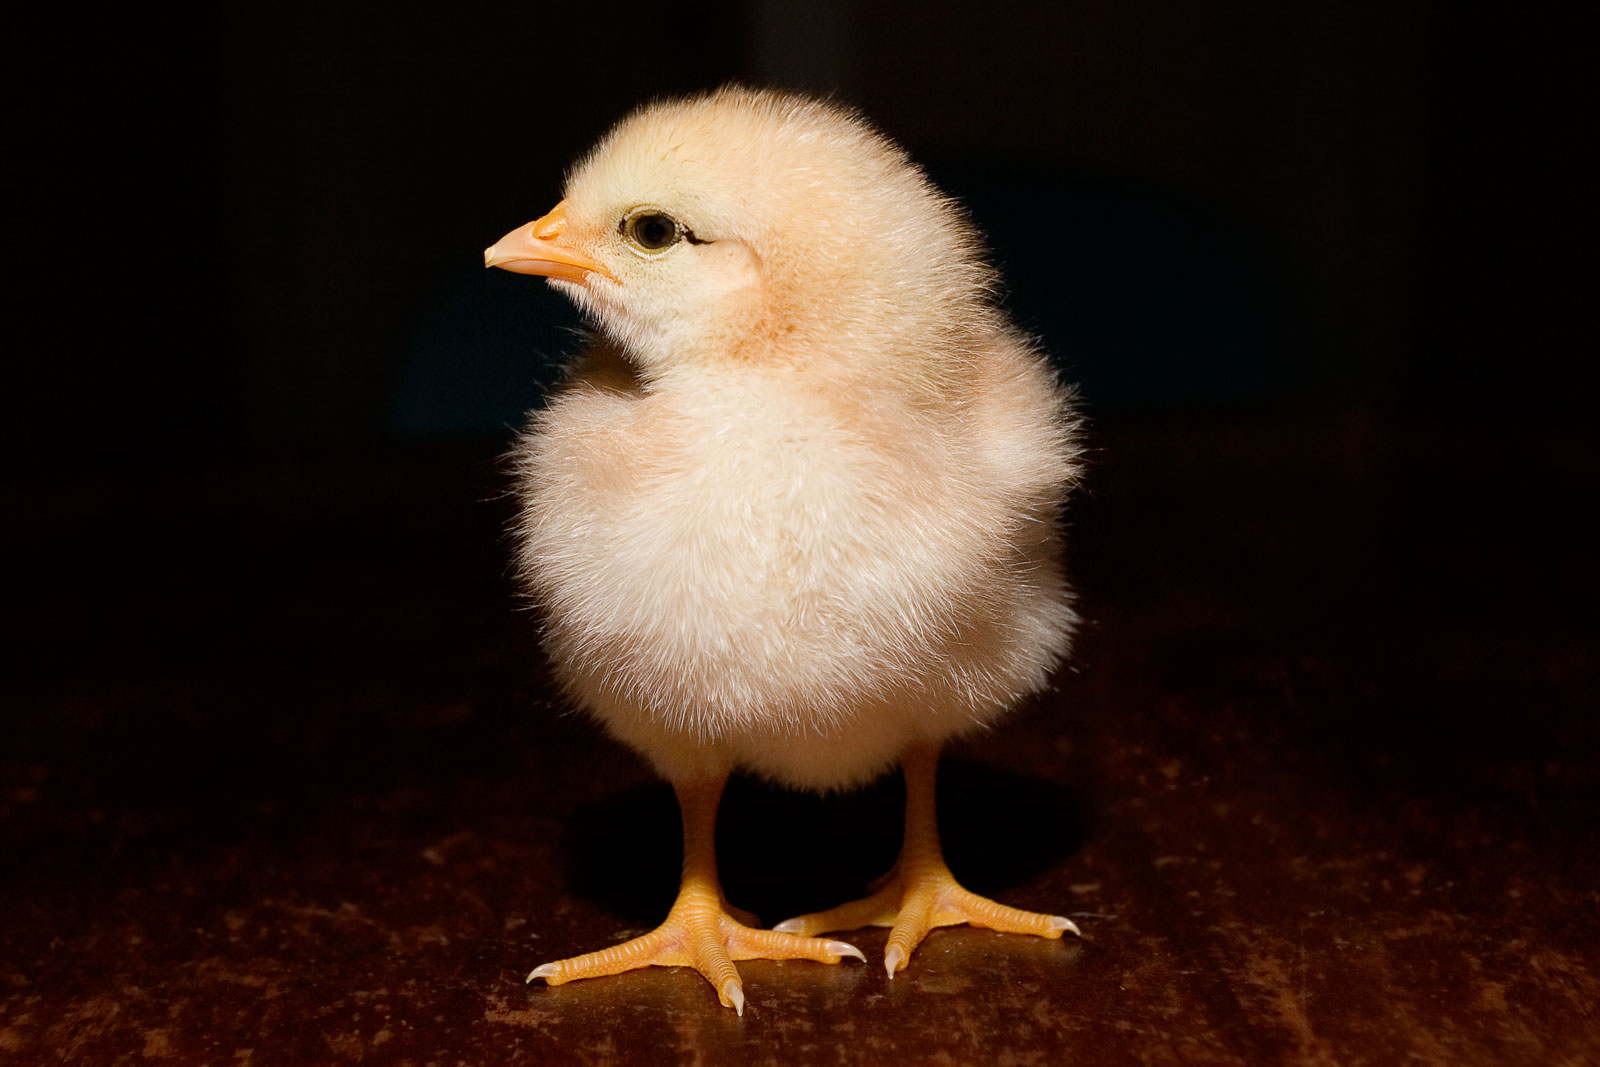 http://upload.wikimedia.org/wikipedia/commons/5/54/Day_old_chick_black_background.jpg